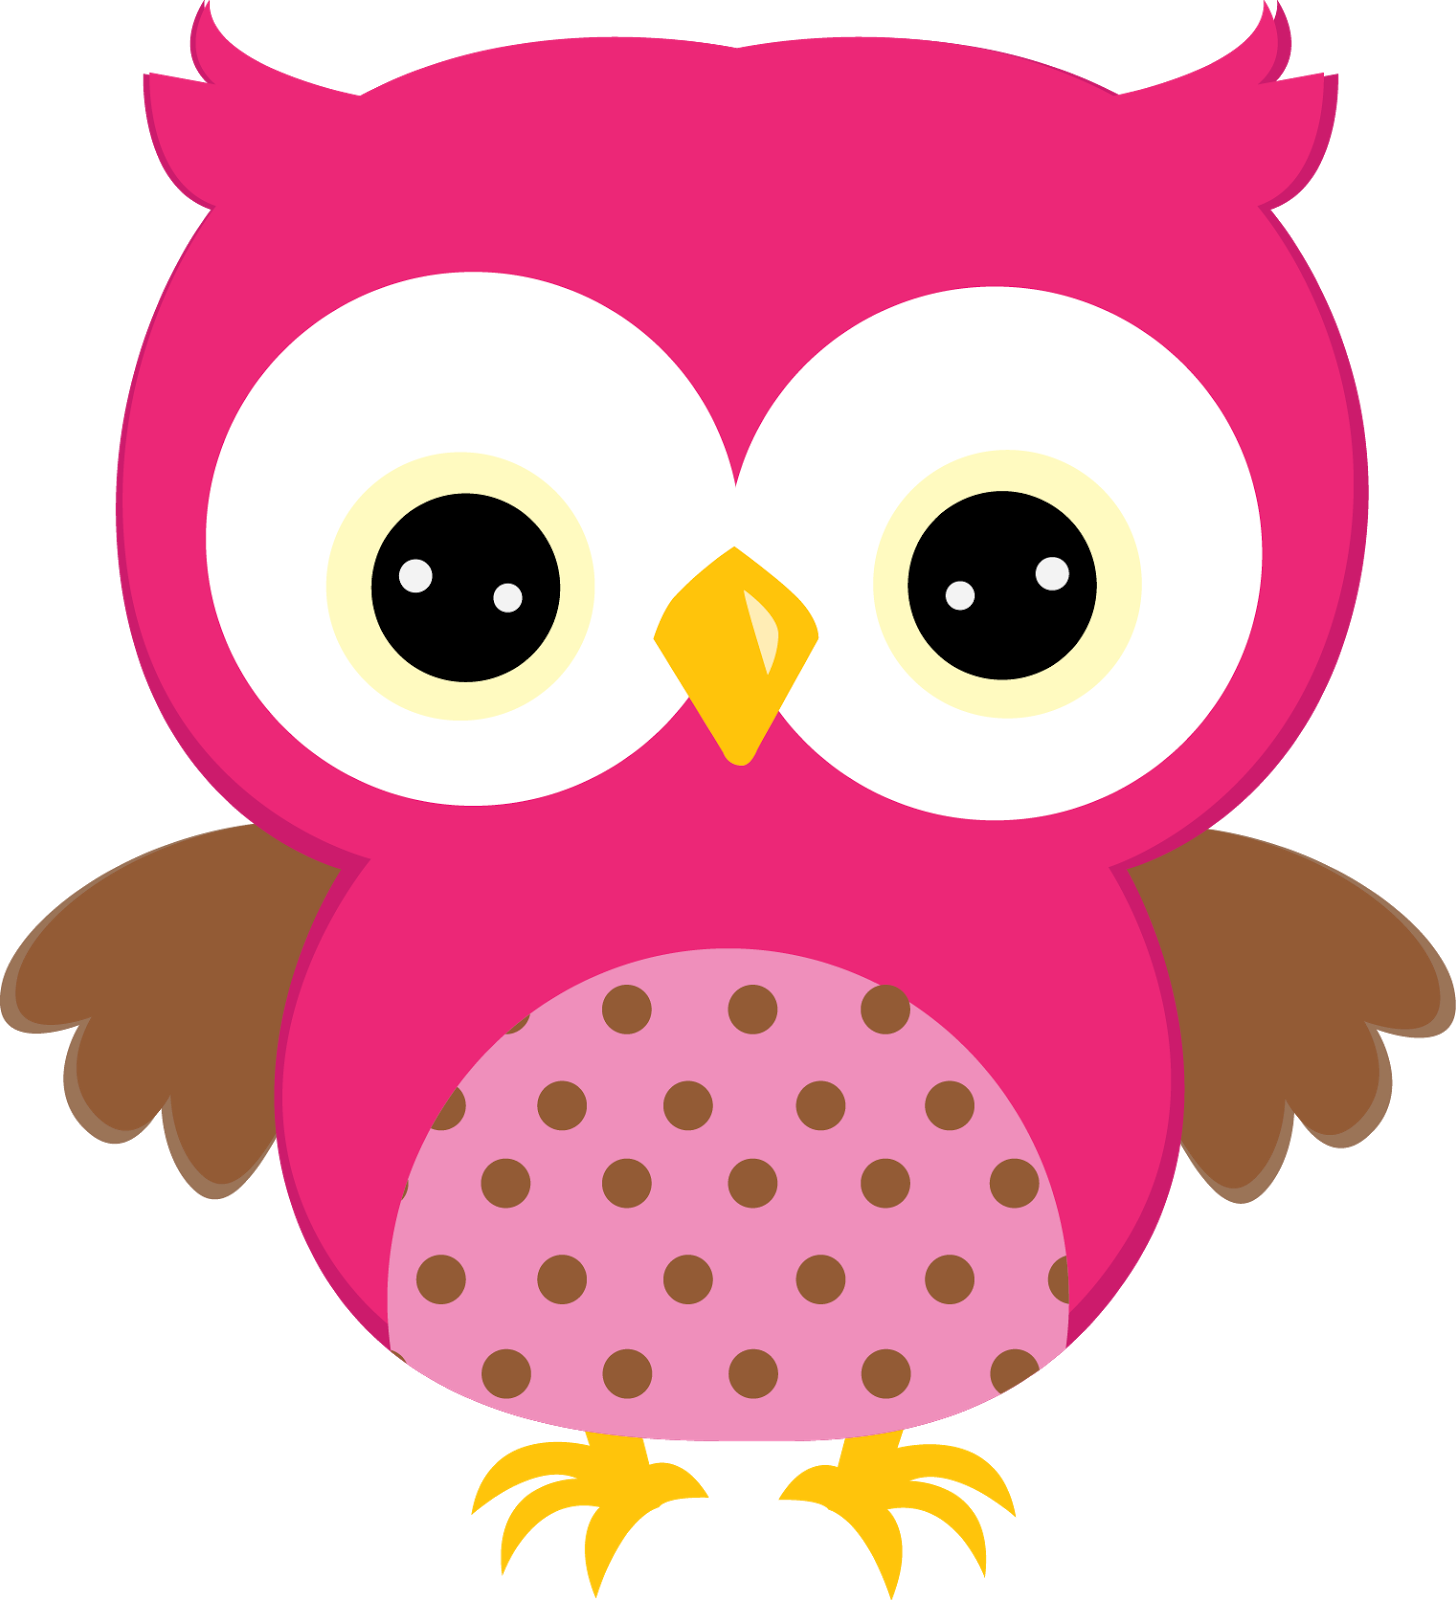 Quinceanera crown clipart image free stock Quinceanera Owls in Colors Clipart. | Oh My Quinceaneras! image free stock